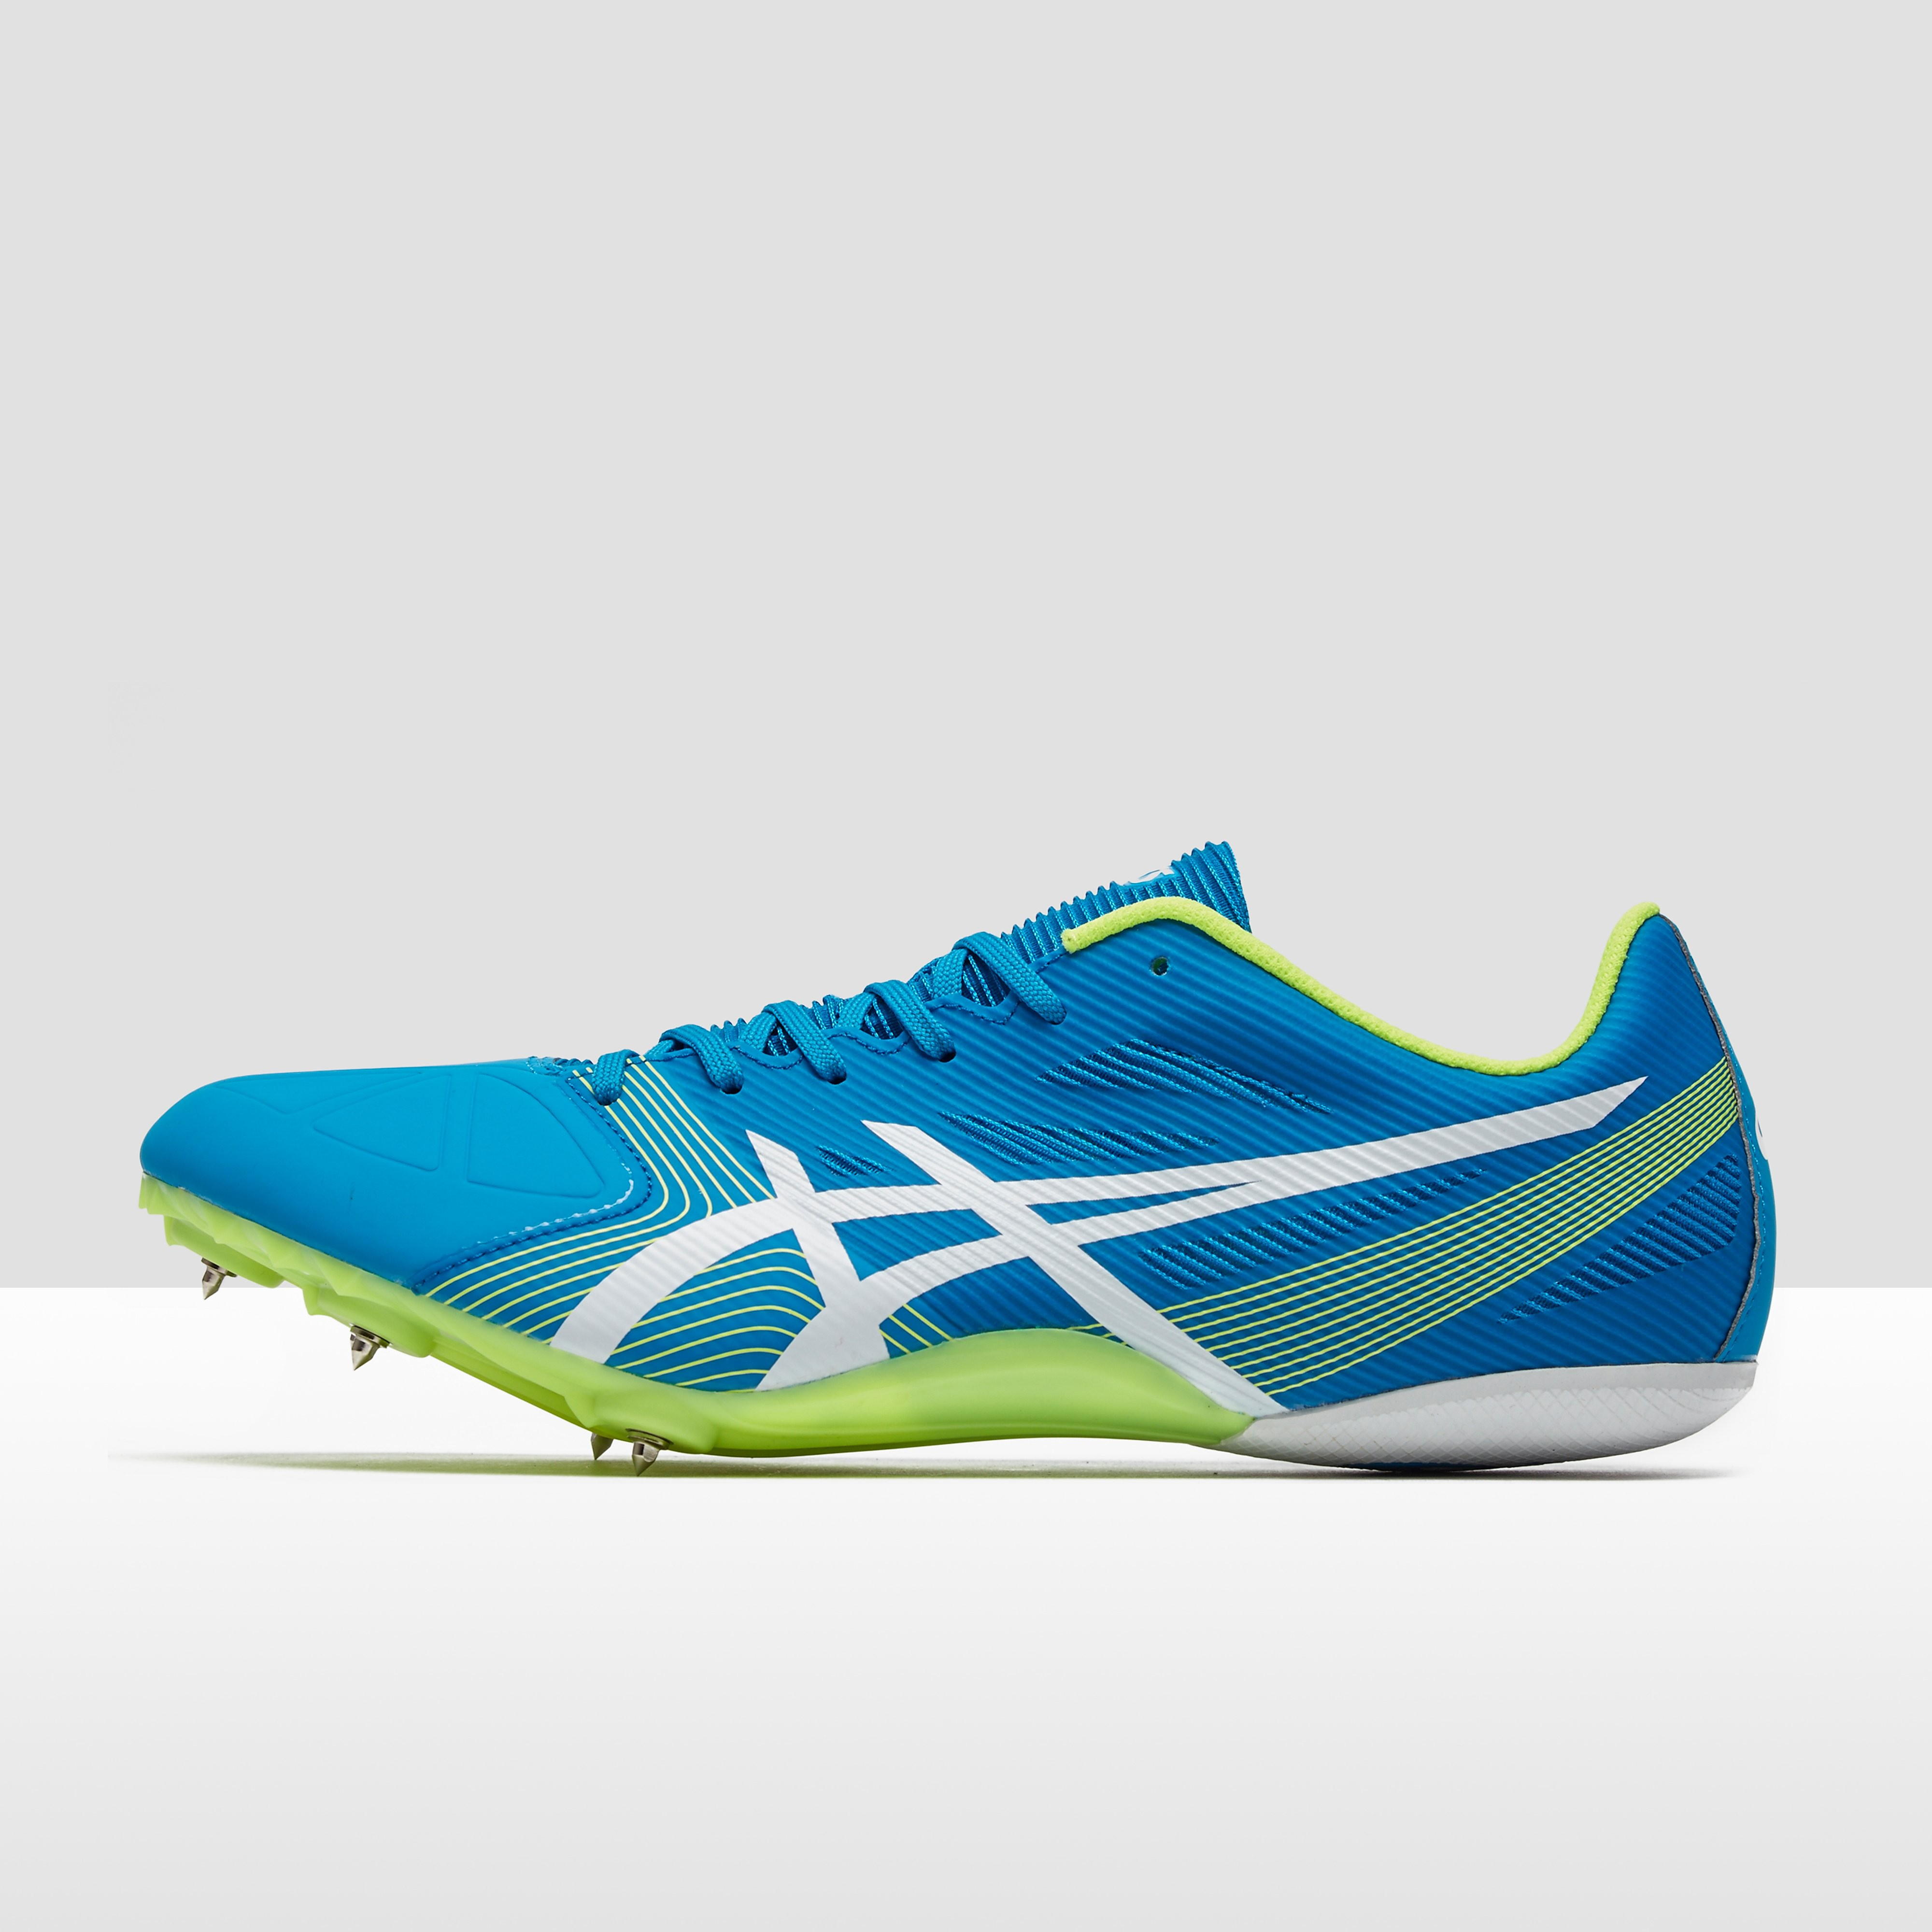 Asics Men's Hyper Sprint 6 Running Spikes